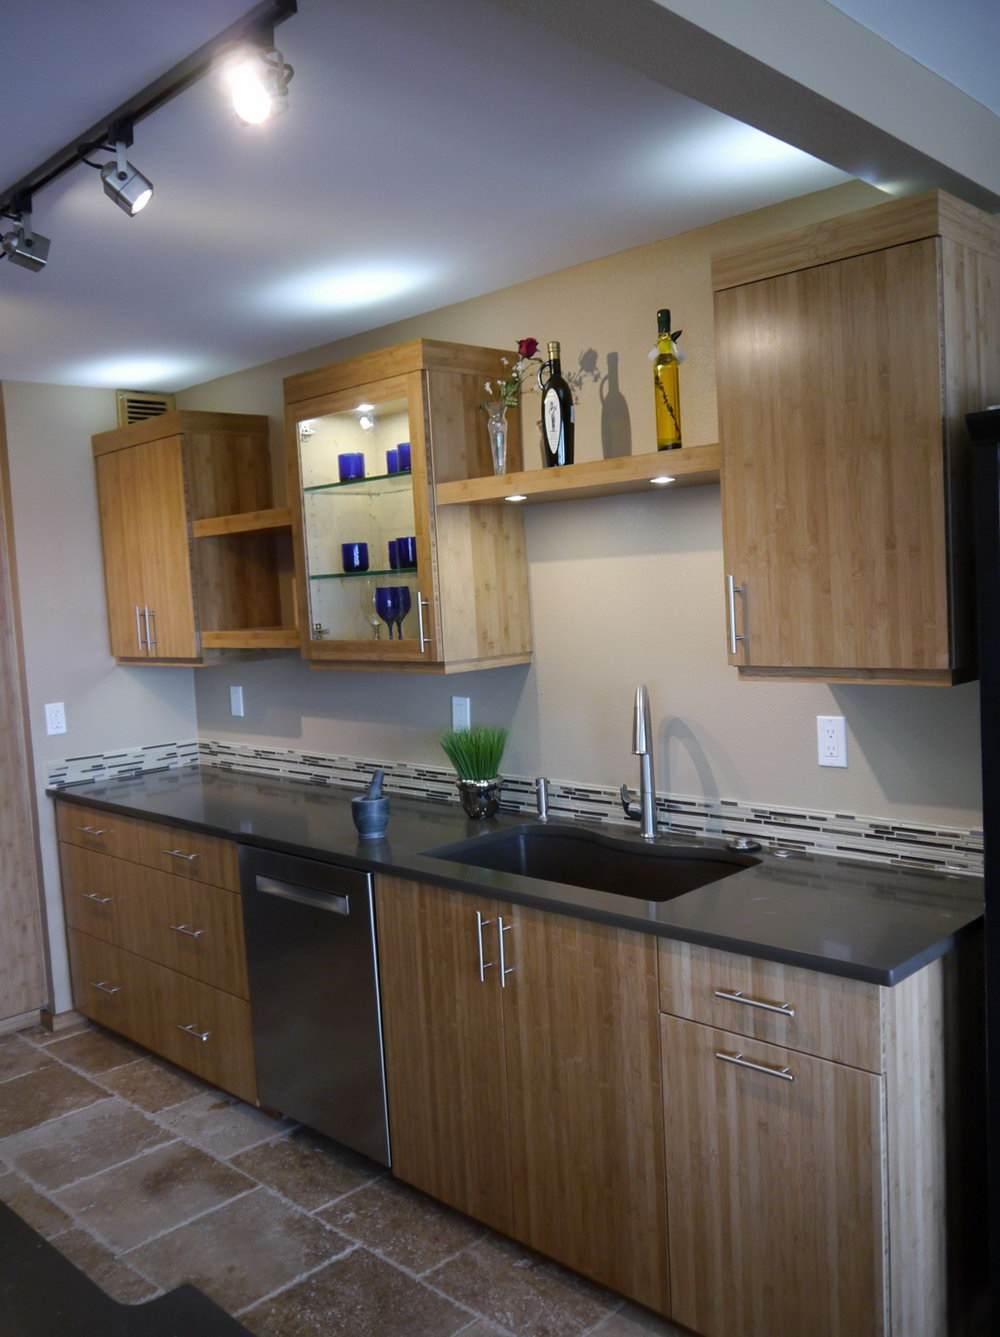 How Much To Reface Kitchen Cabinets Uk